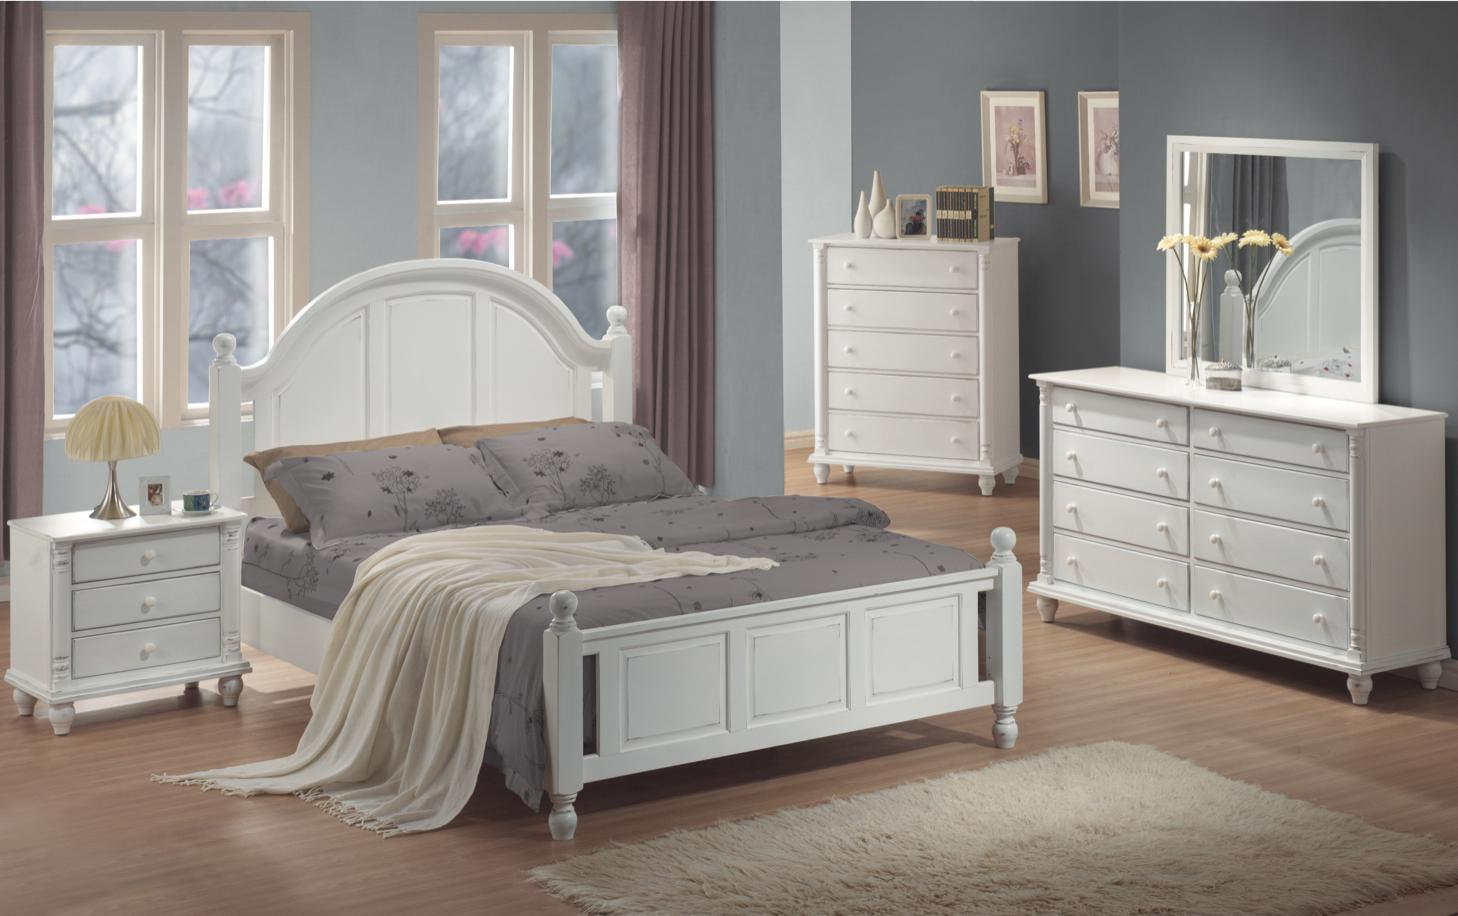 Coaster Kayla King Bedroom Group - Item Number: 201180 K Bedroom Group 1